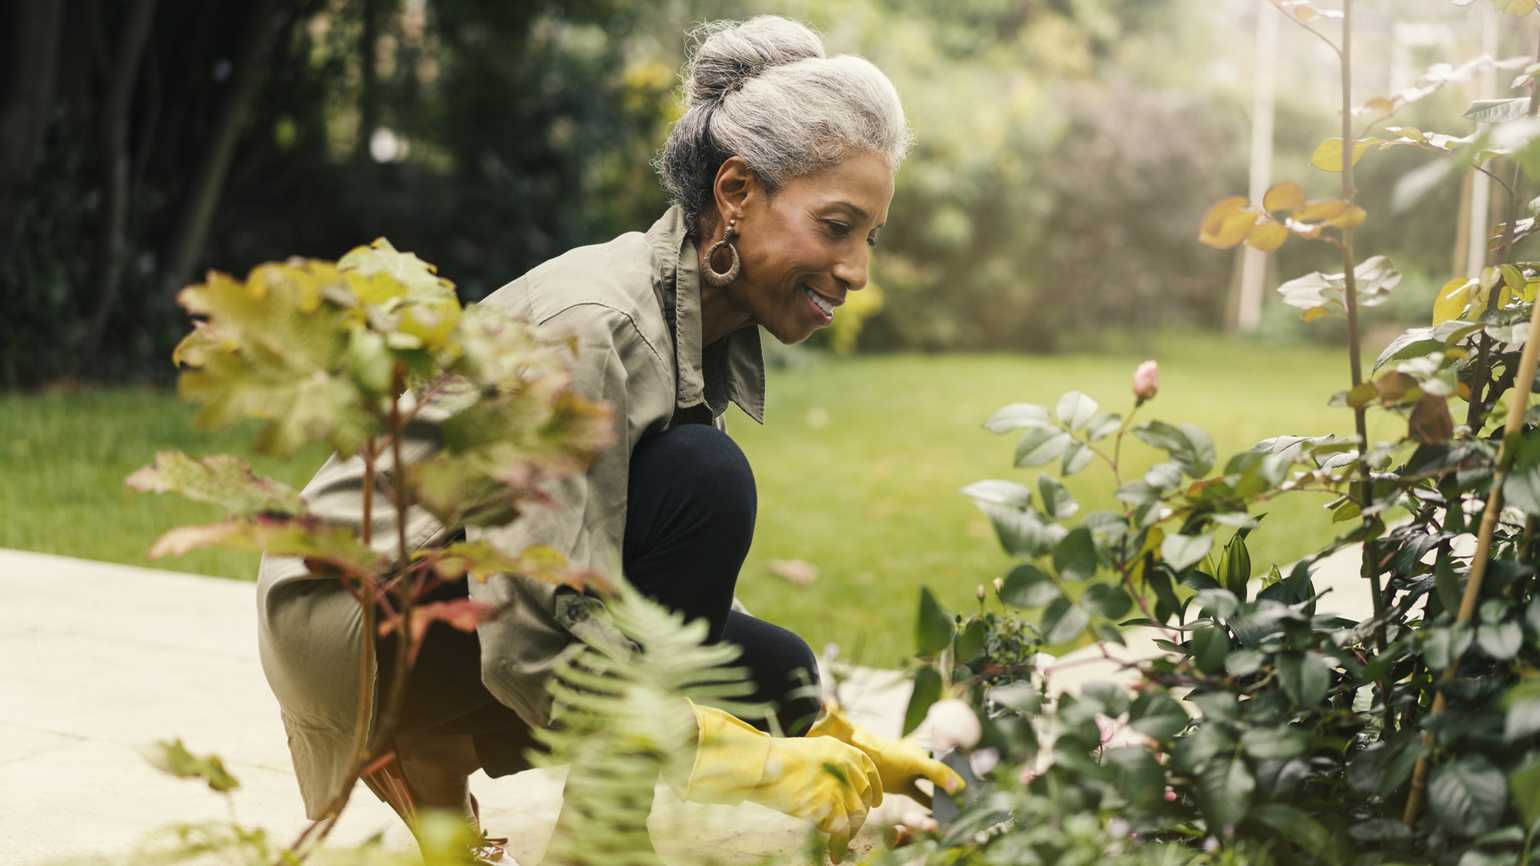 A senior woman gardening outside in the Spring weather.